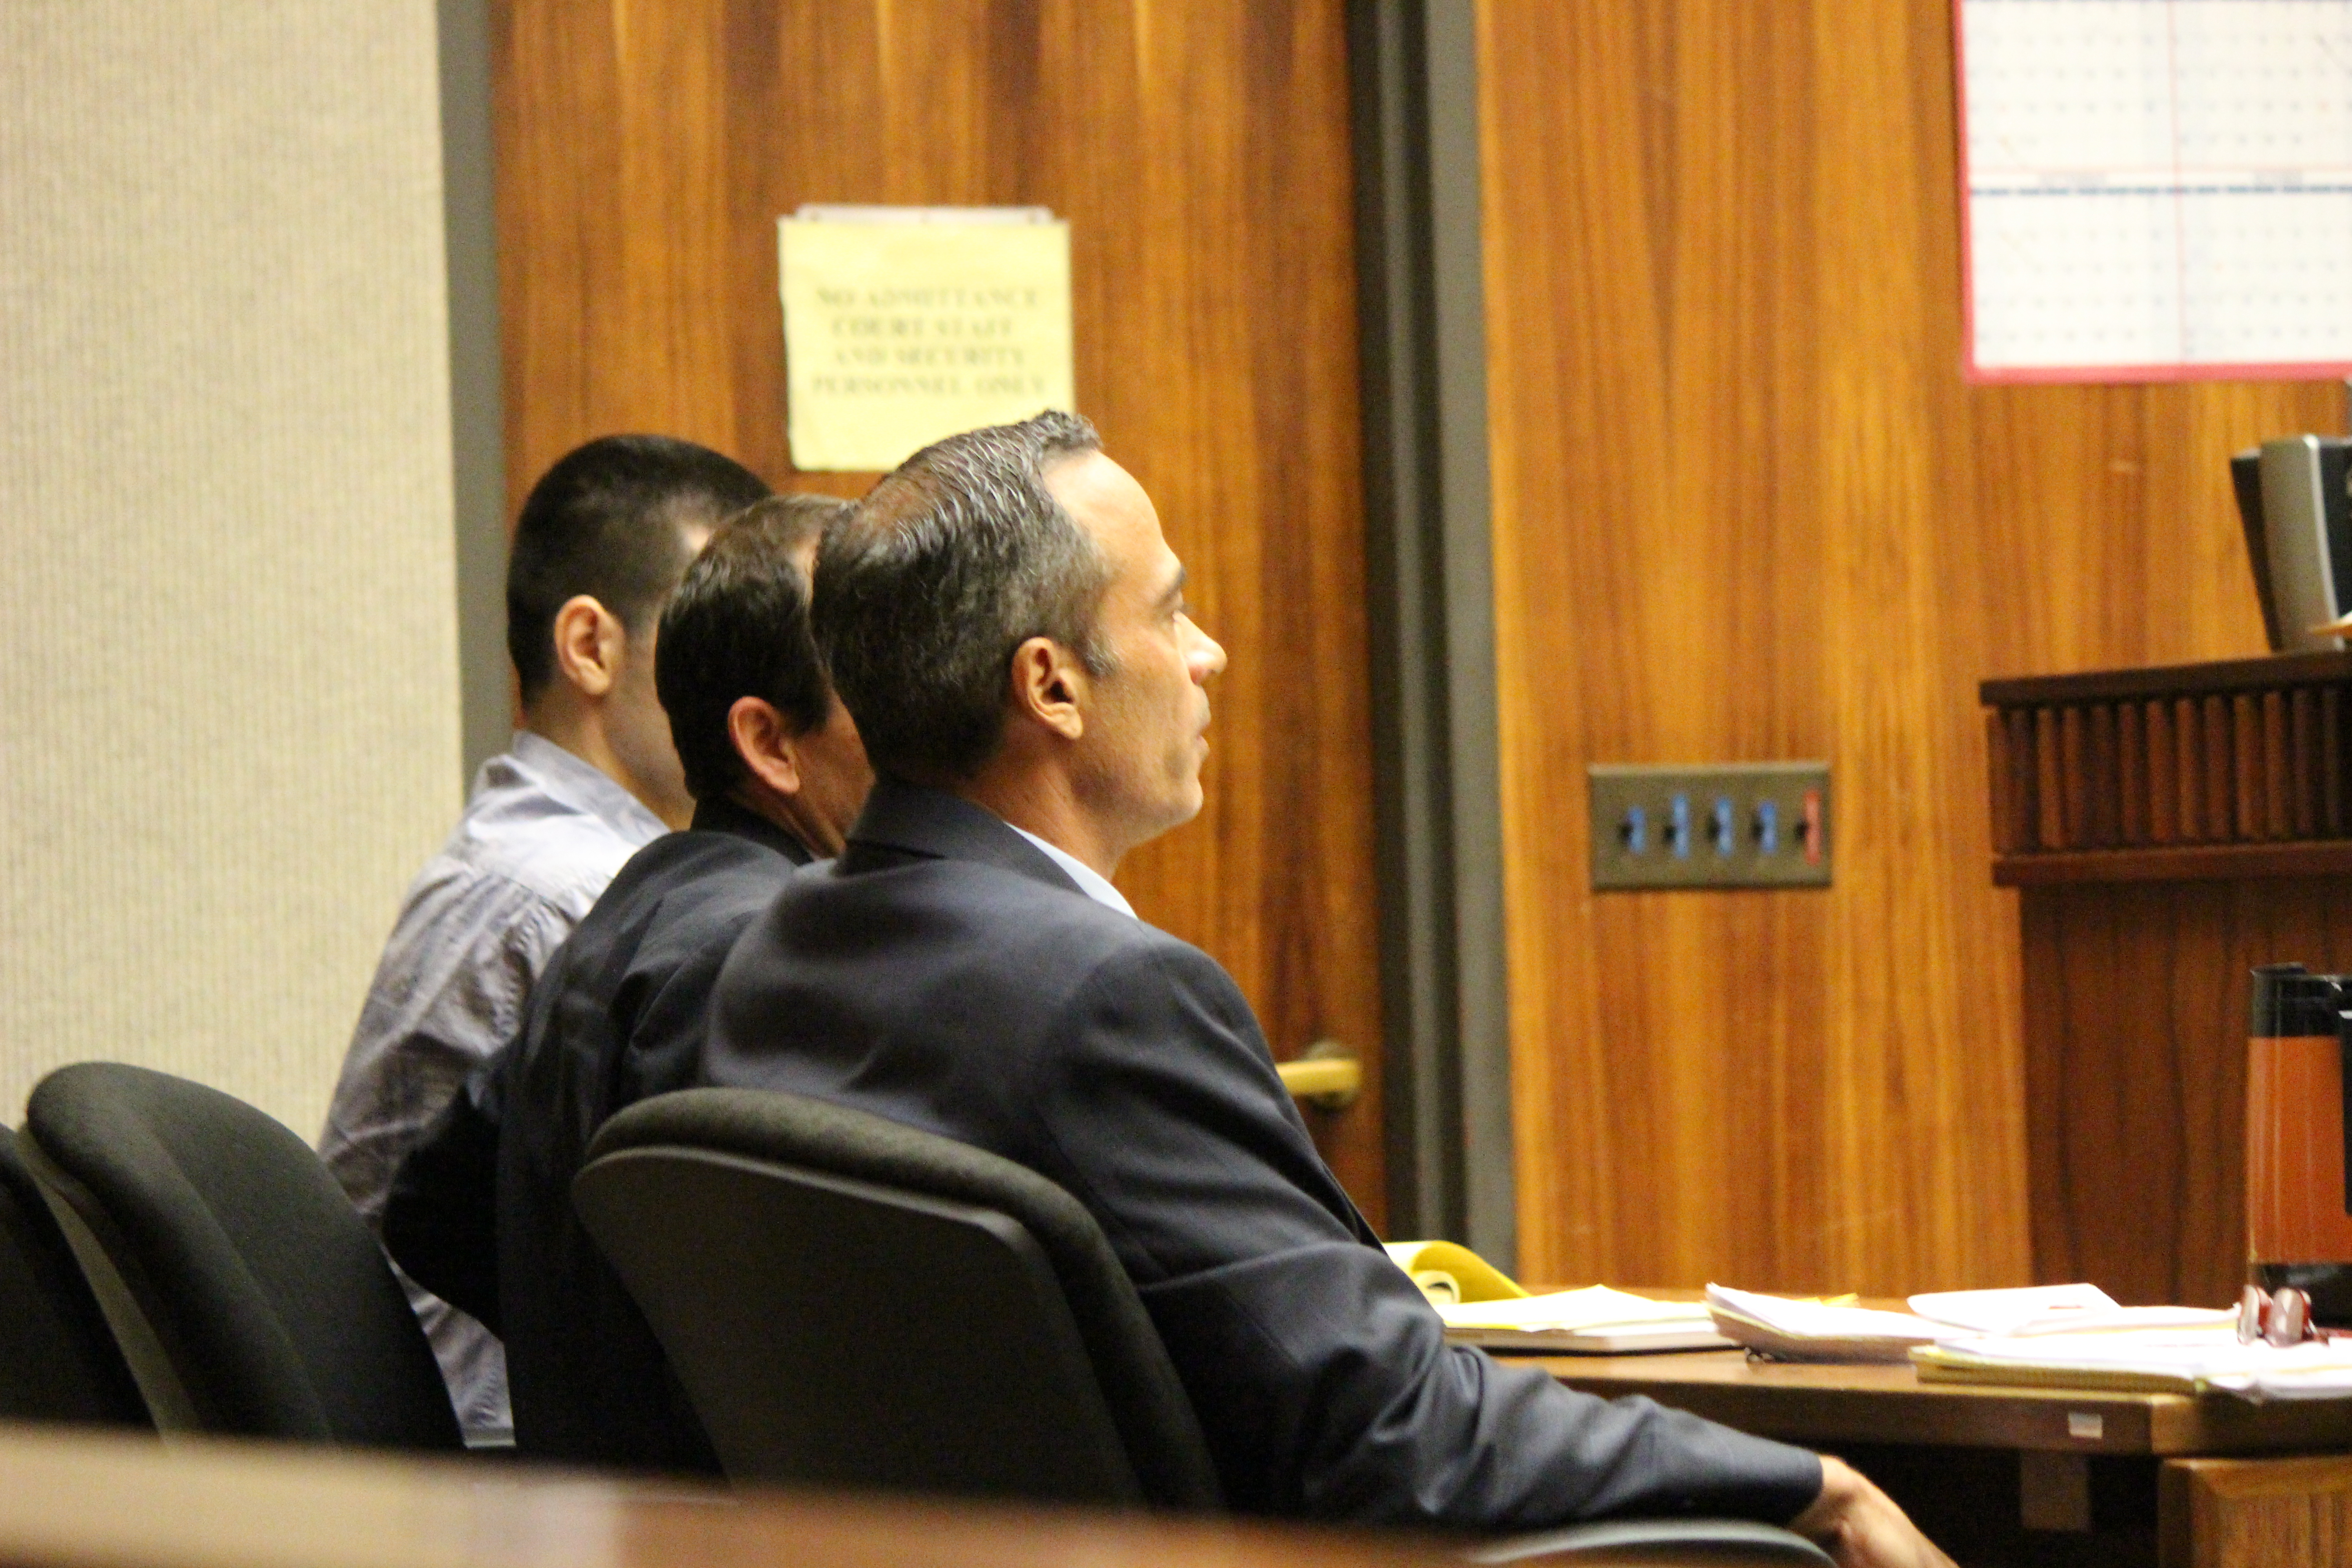 State v Capobianco trail. Defense Attorney Jon Apo in foreground (right) with fellow defense attorney Matthew Nardi (middle) and defendant Steven Capobianco (left) . PC: 11.30.16 by Wendy Osher.